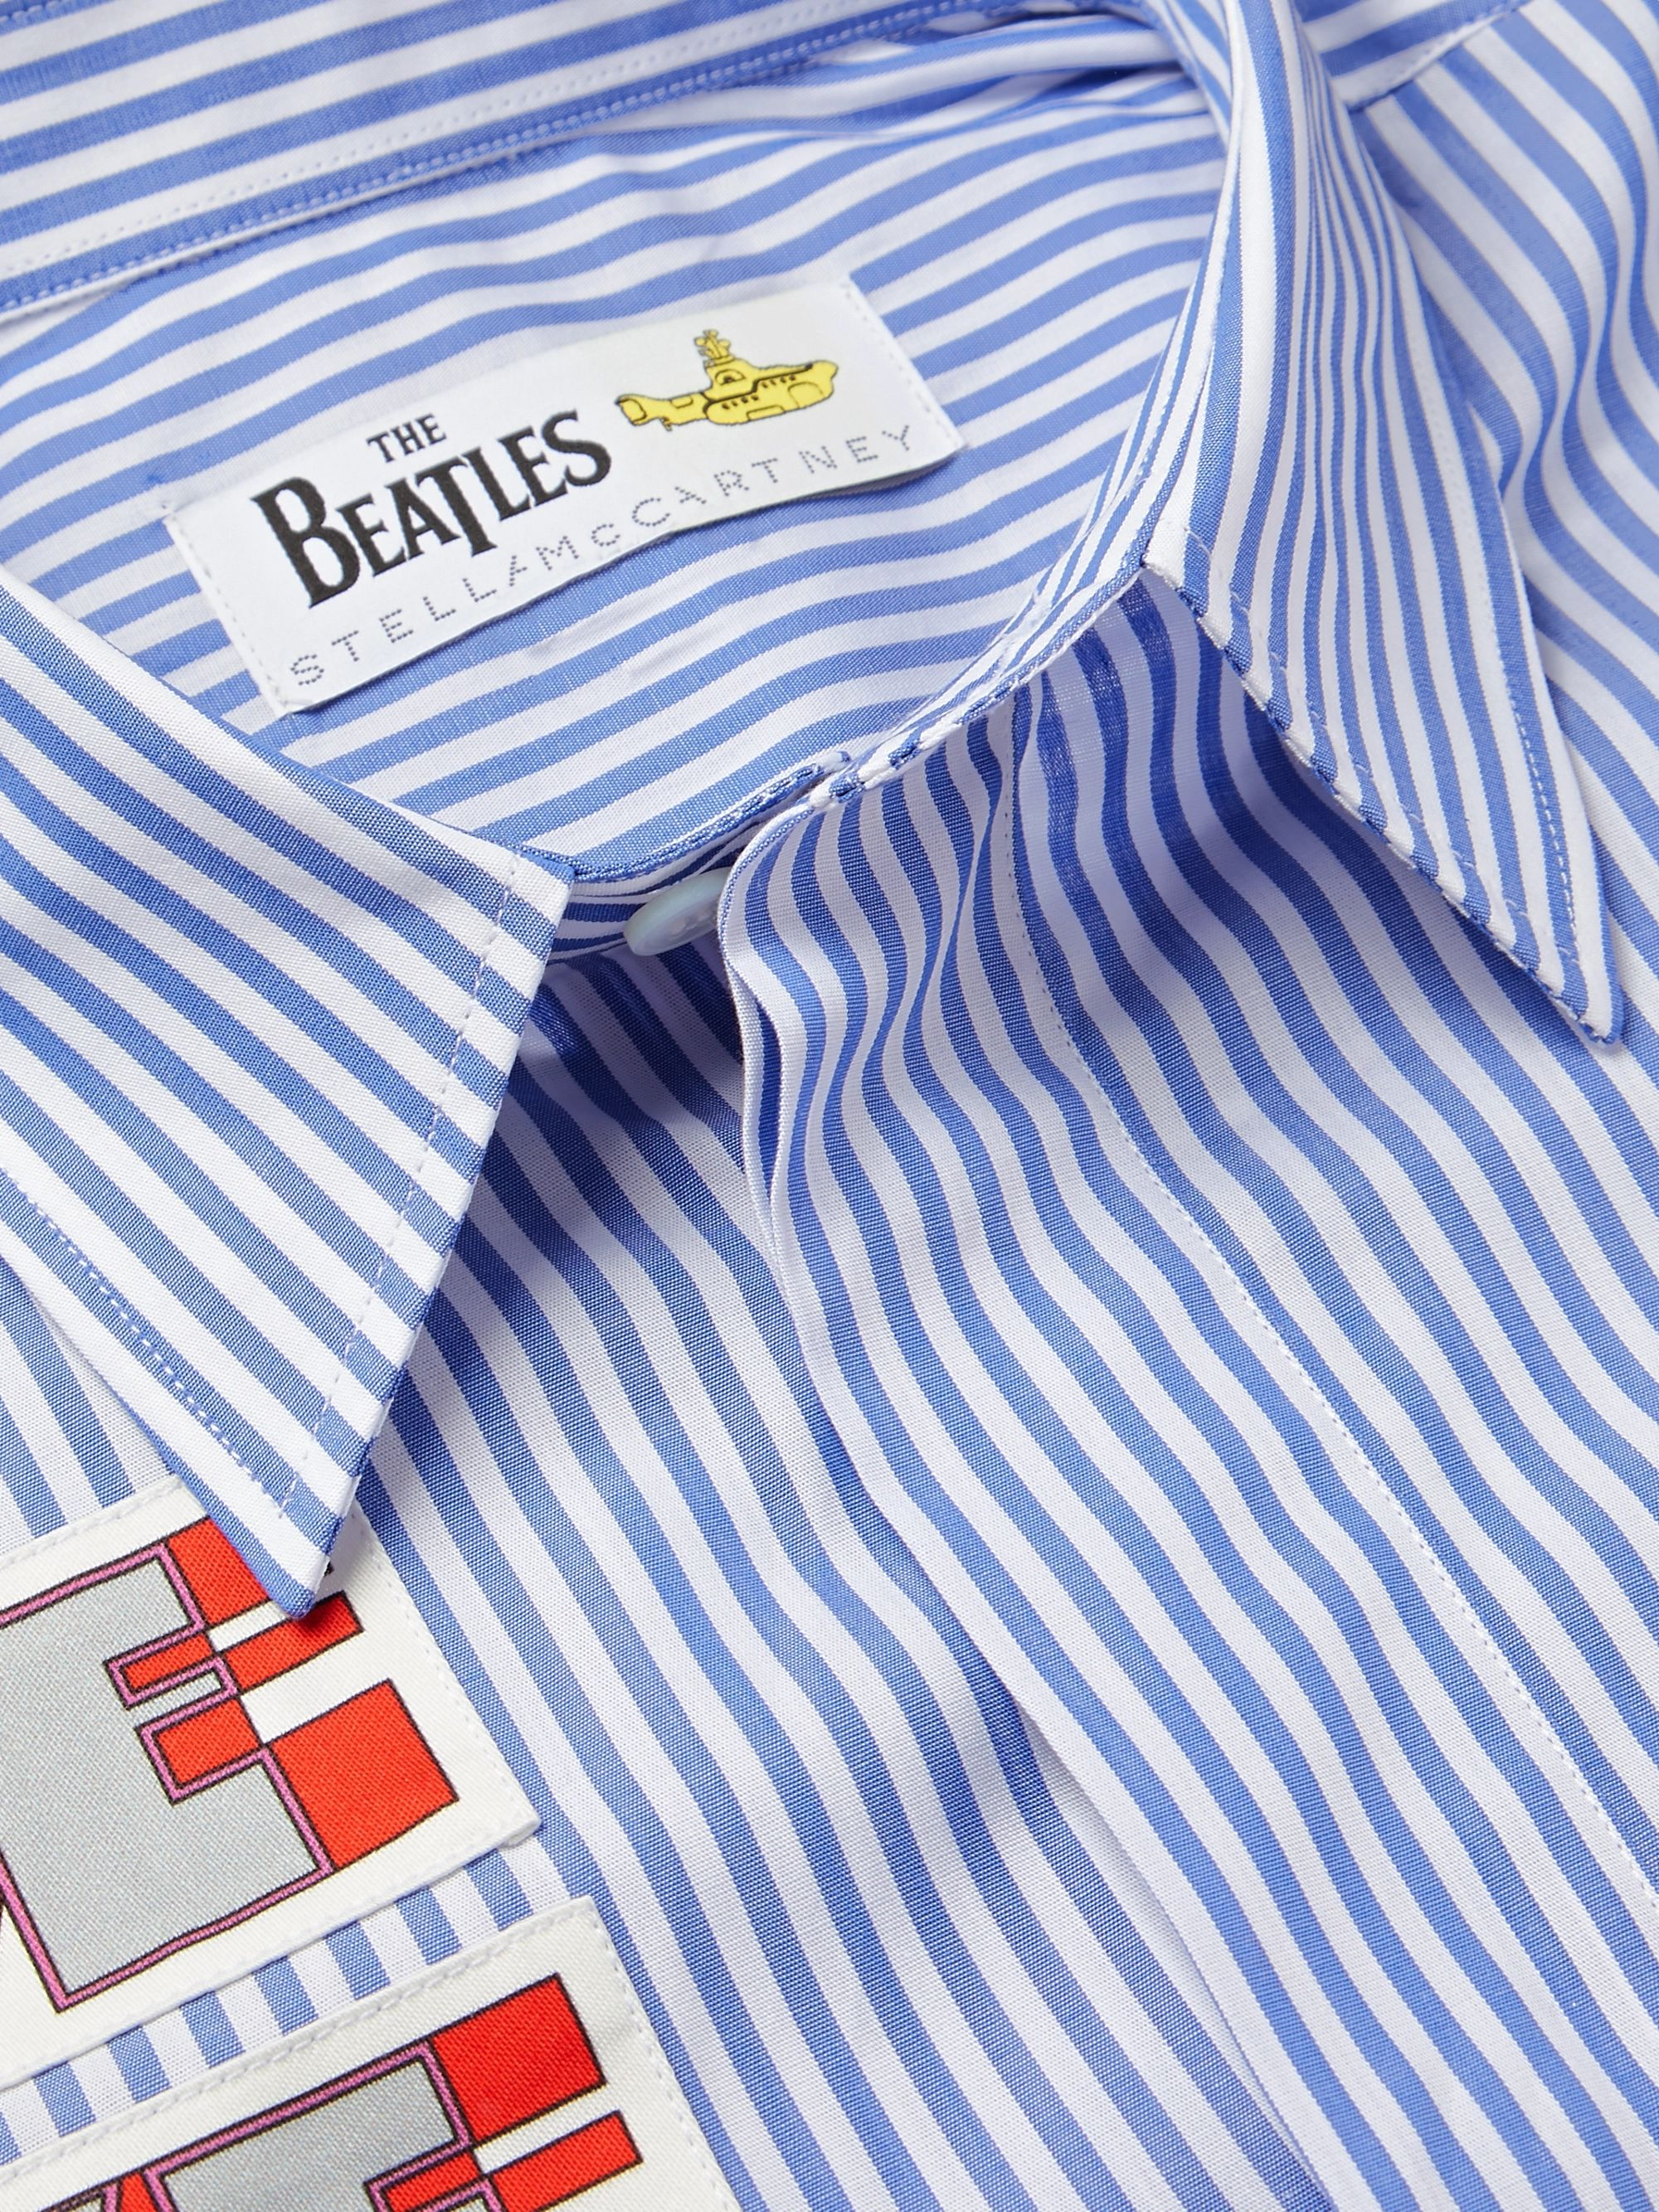 Stella McCartney + The Beatles Appliquéd Striped Cotton-Poplin Shirt